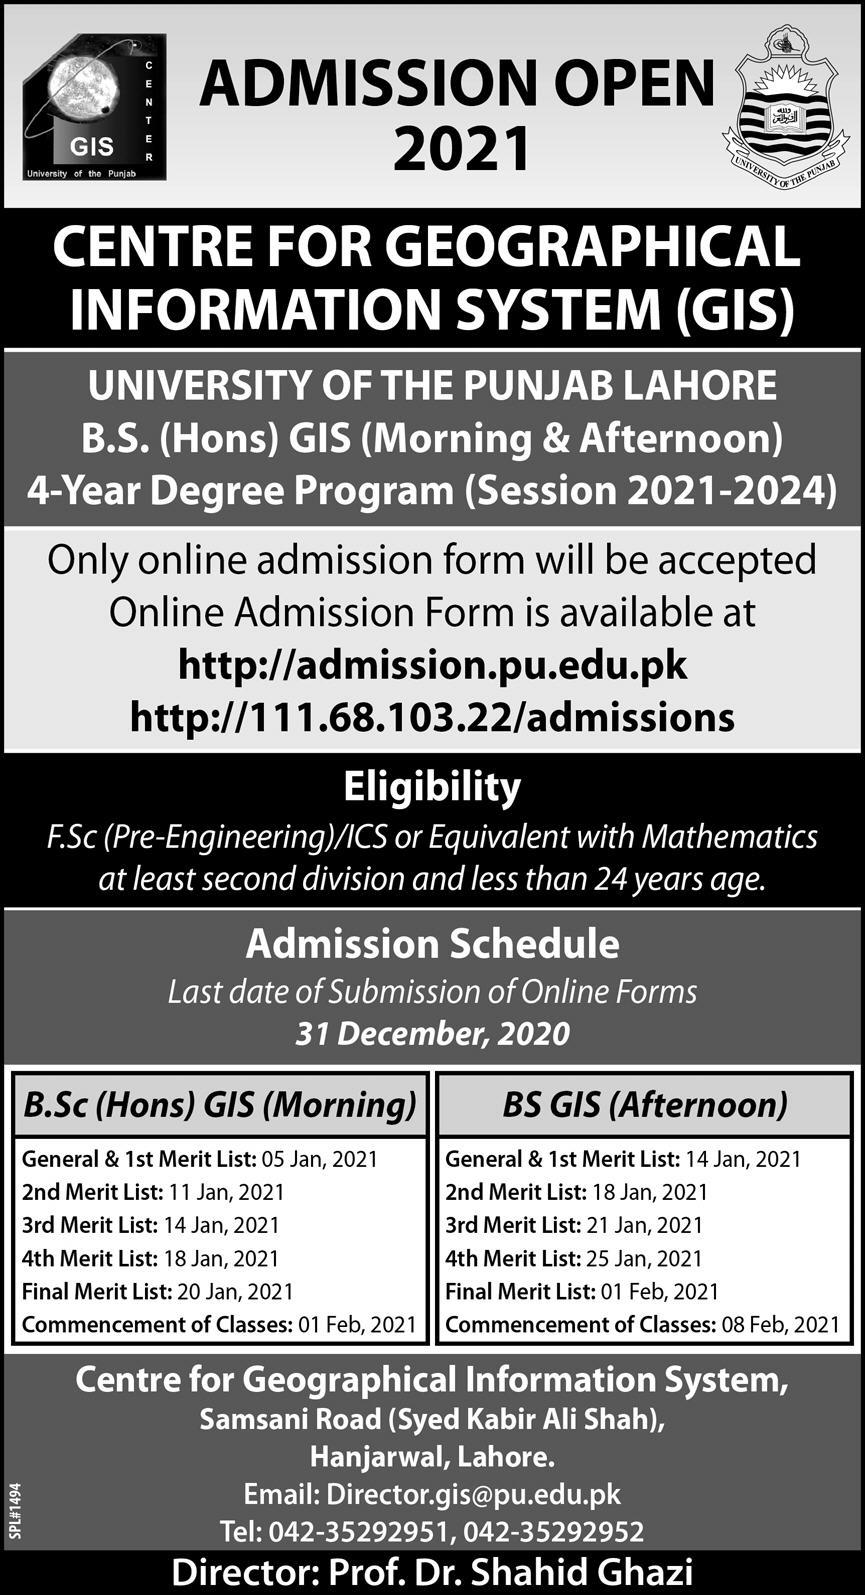 CENTRE FOR GEOGRAPHICAL INFORMATION SYSTEM (GIS) UNIVERSITY OF THE PUNJAB LAHORE B.S ADMISSION